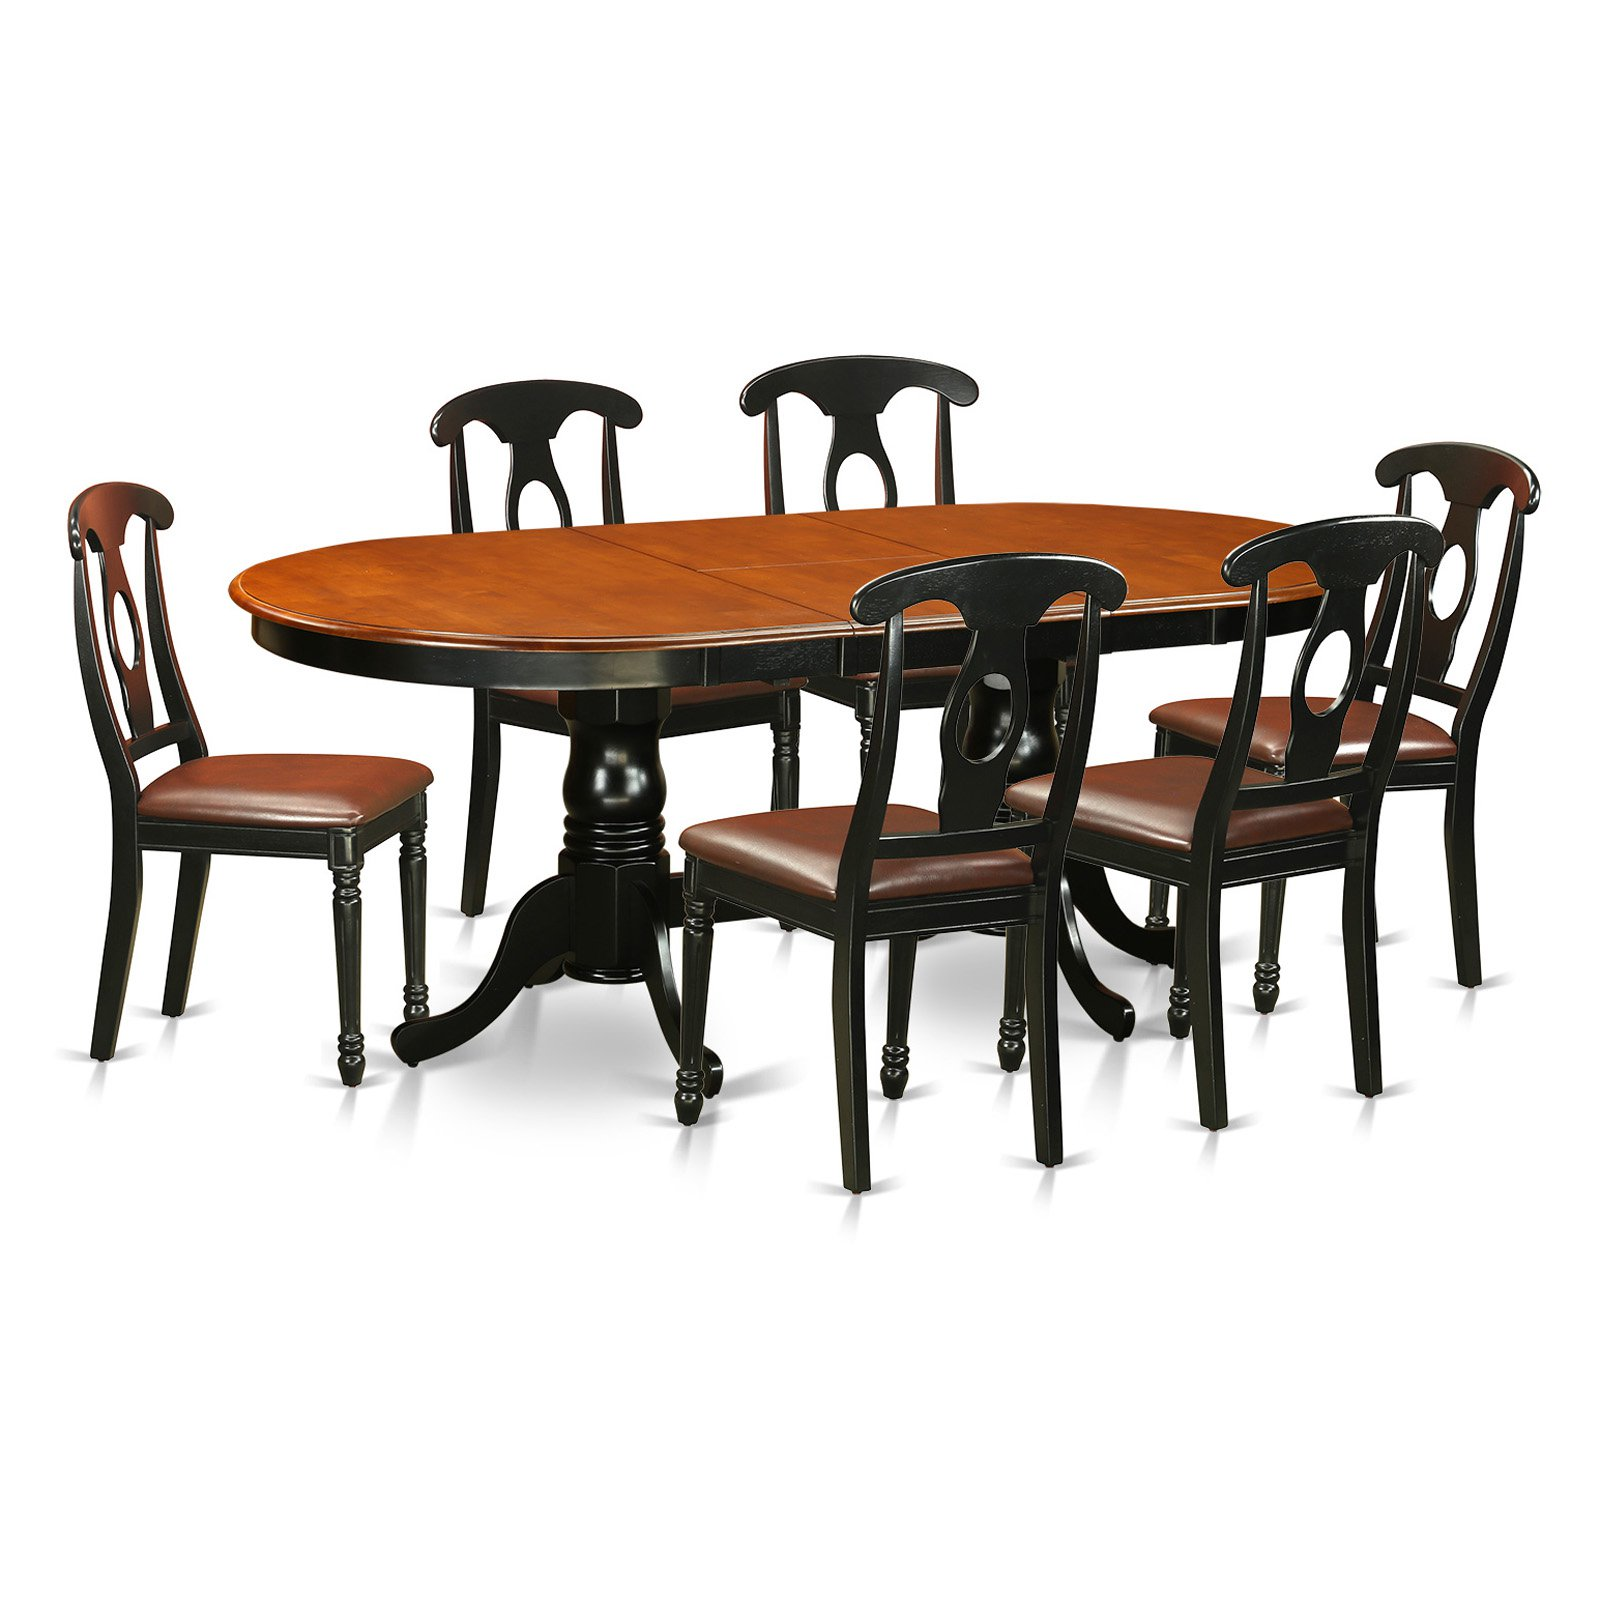 East West Furniture Plainville 7 Piece Keyhole Dining Table Set